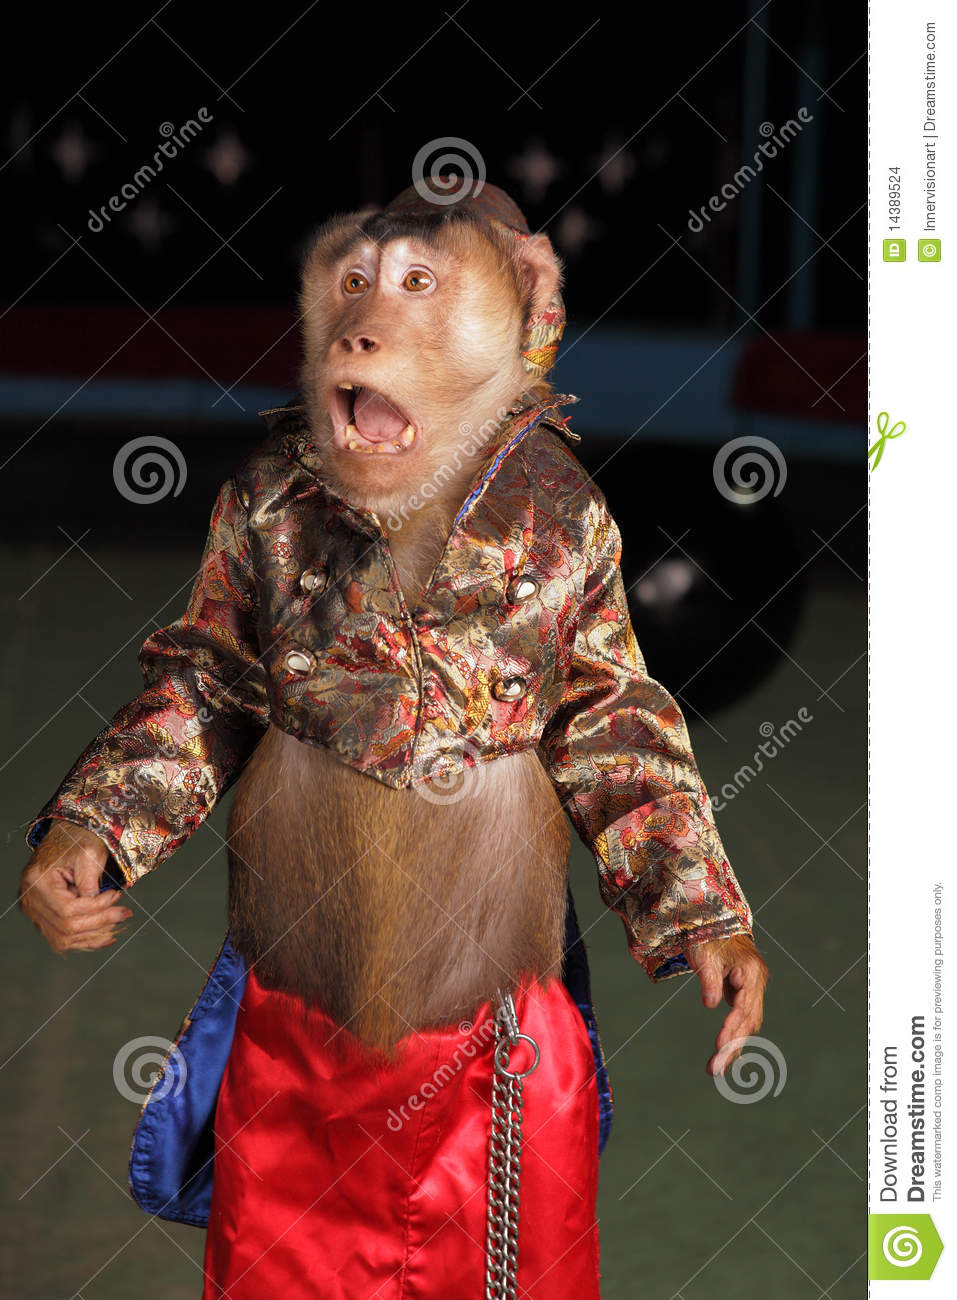 Circus Chimpanzee Monkey In A Suit And A Hat Stock Photo